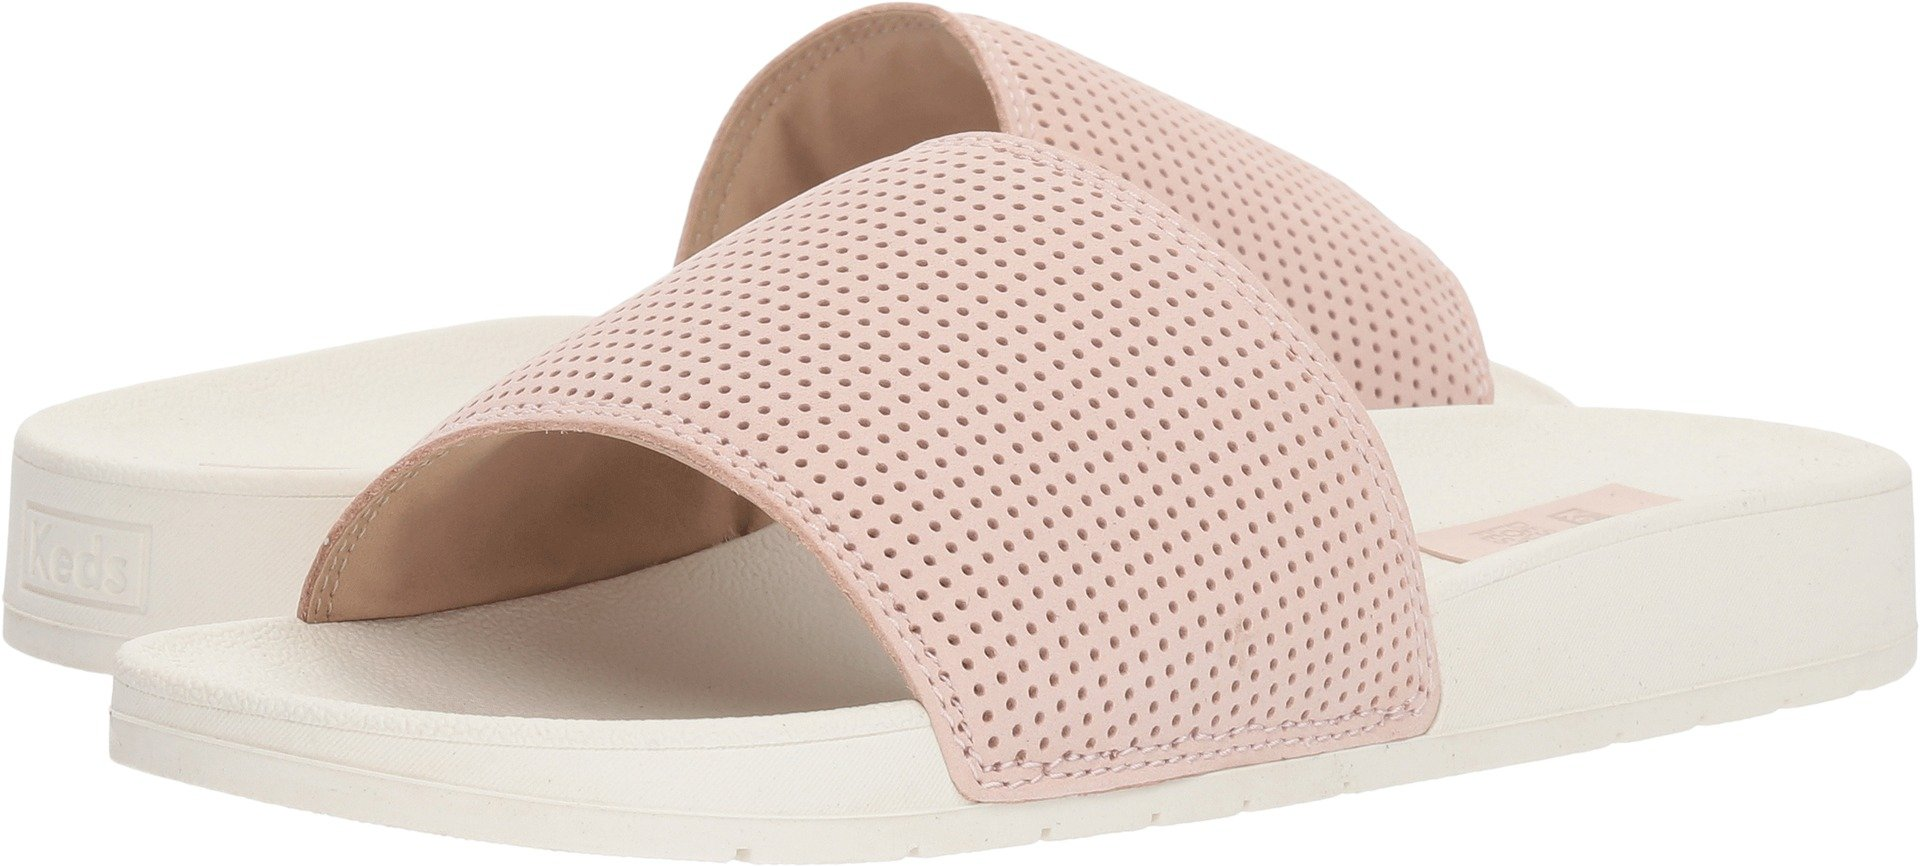 Keds Women's X Design Love Fest Bliss Sandal Blush/Cream 9 B US